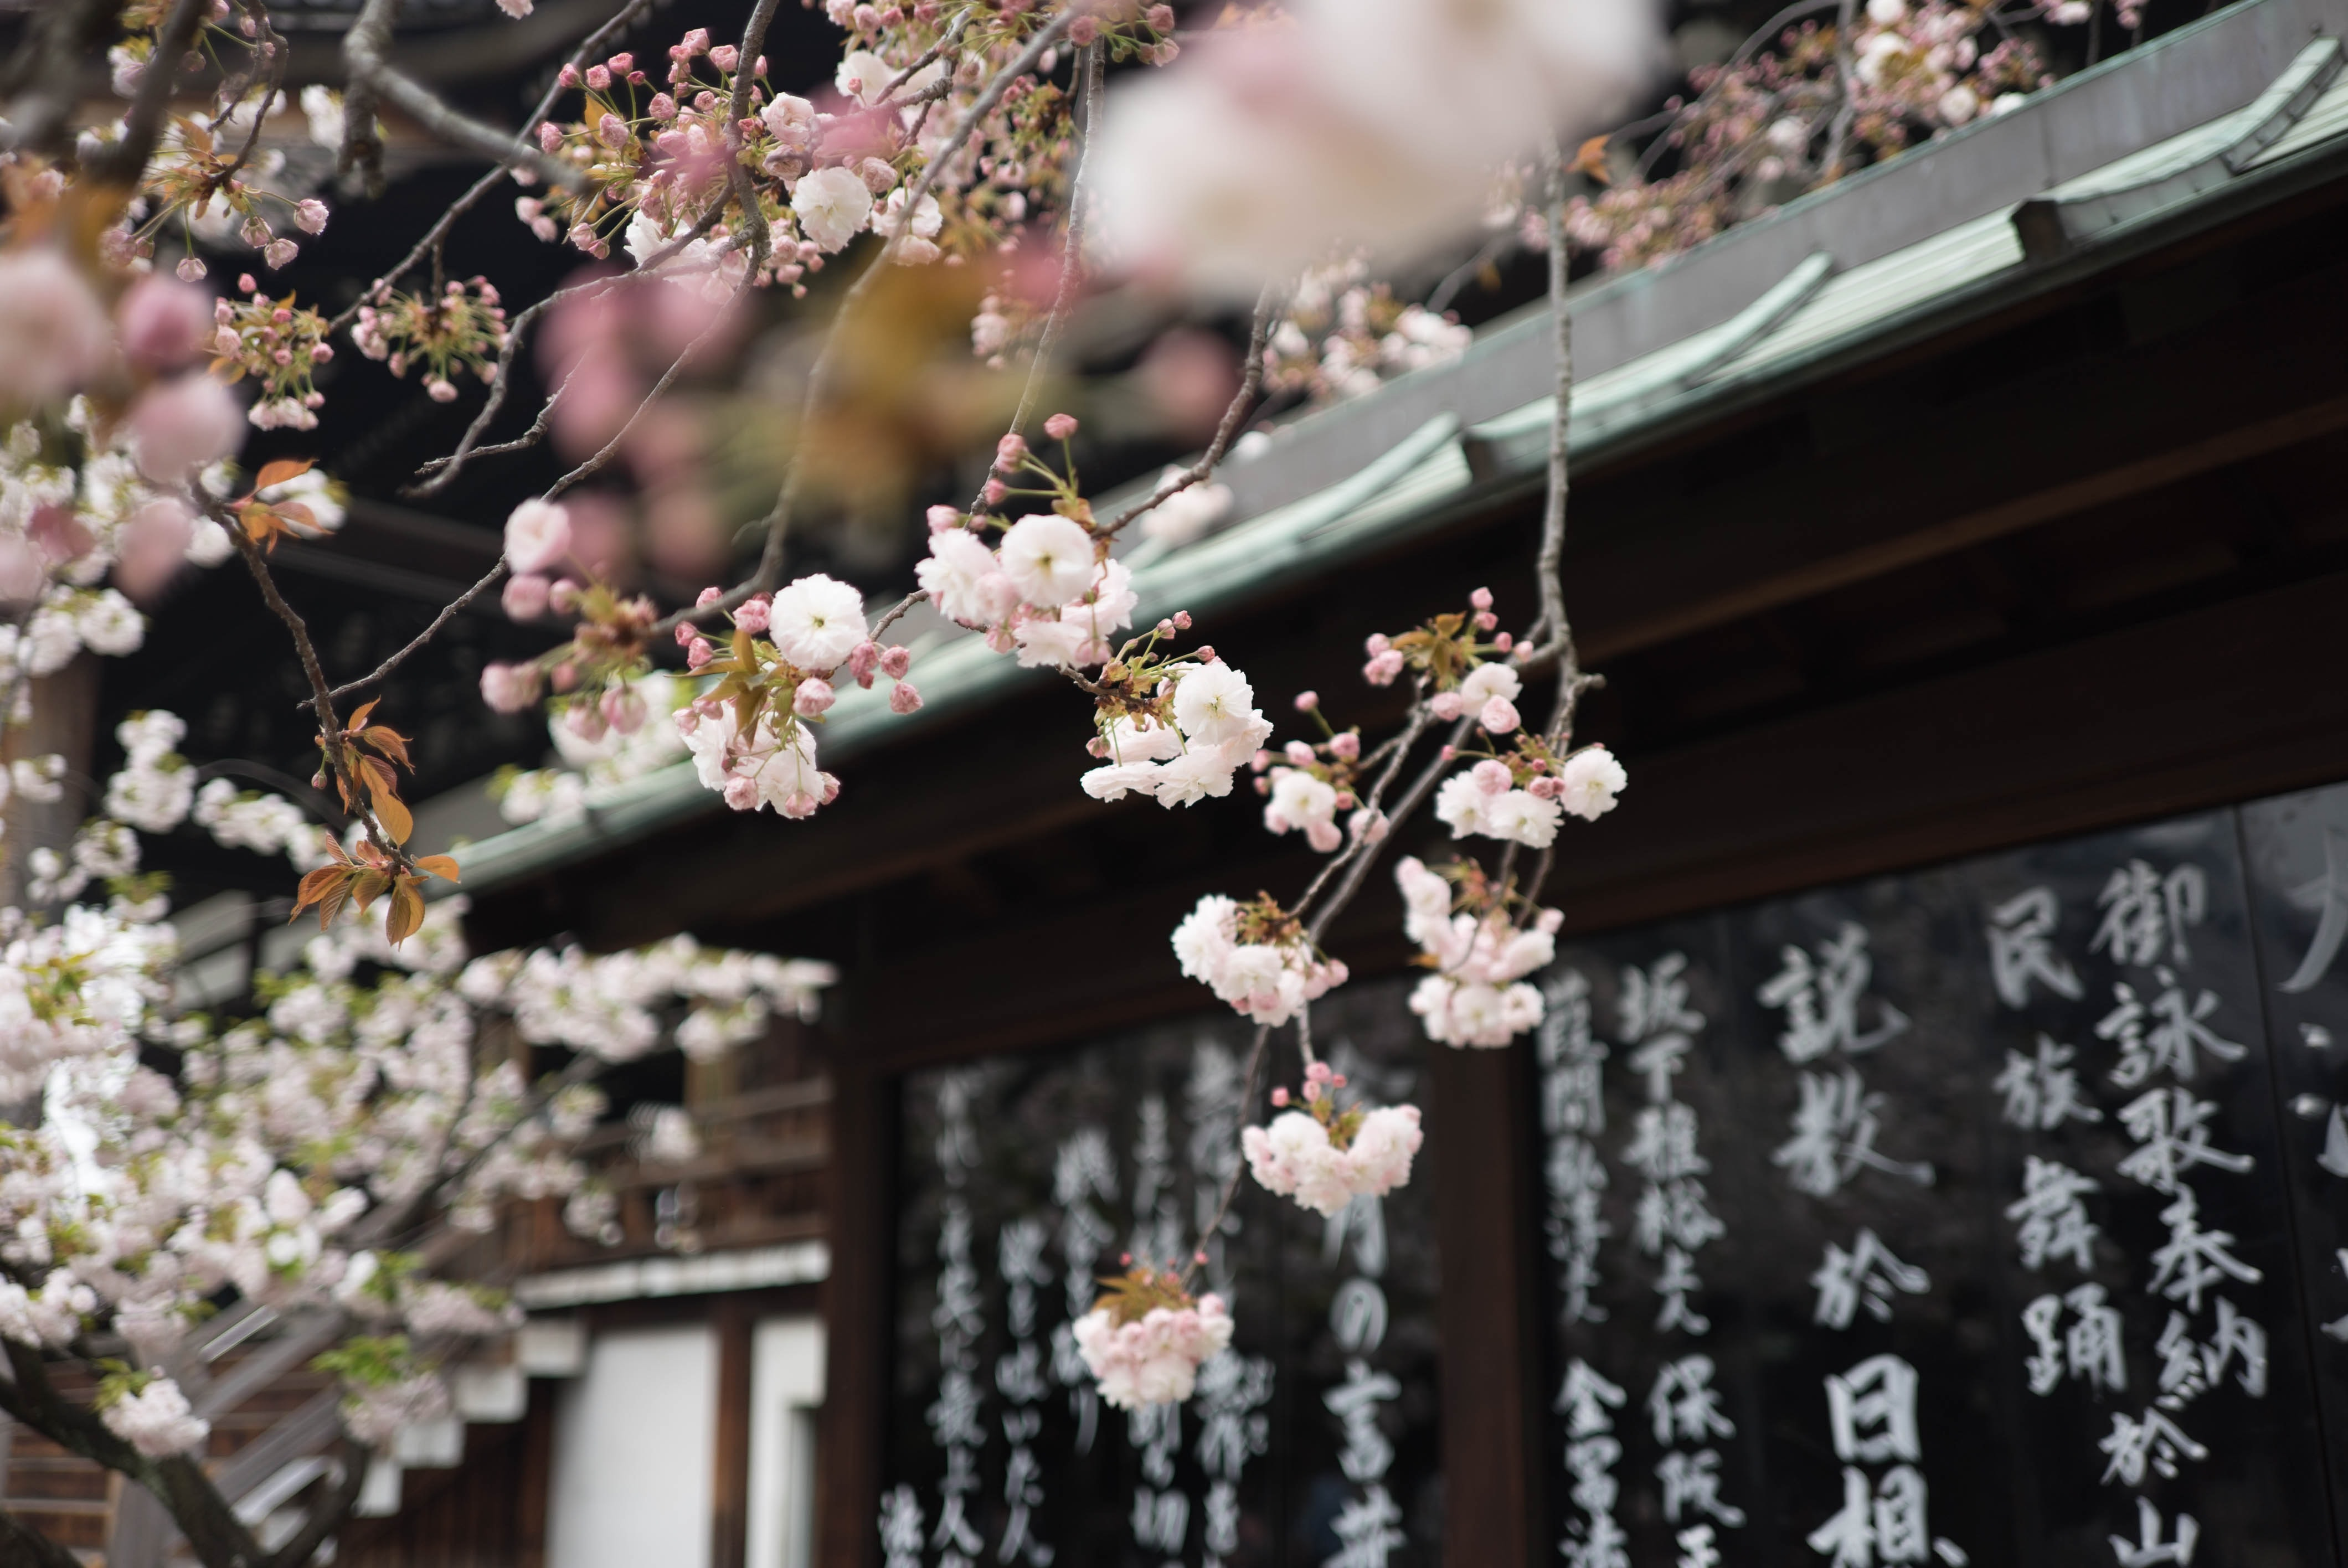 White cherry blossom hanging from a tree over an Asian-style roof